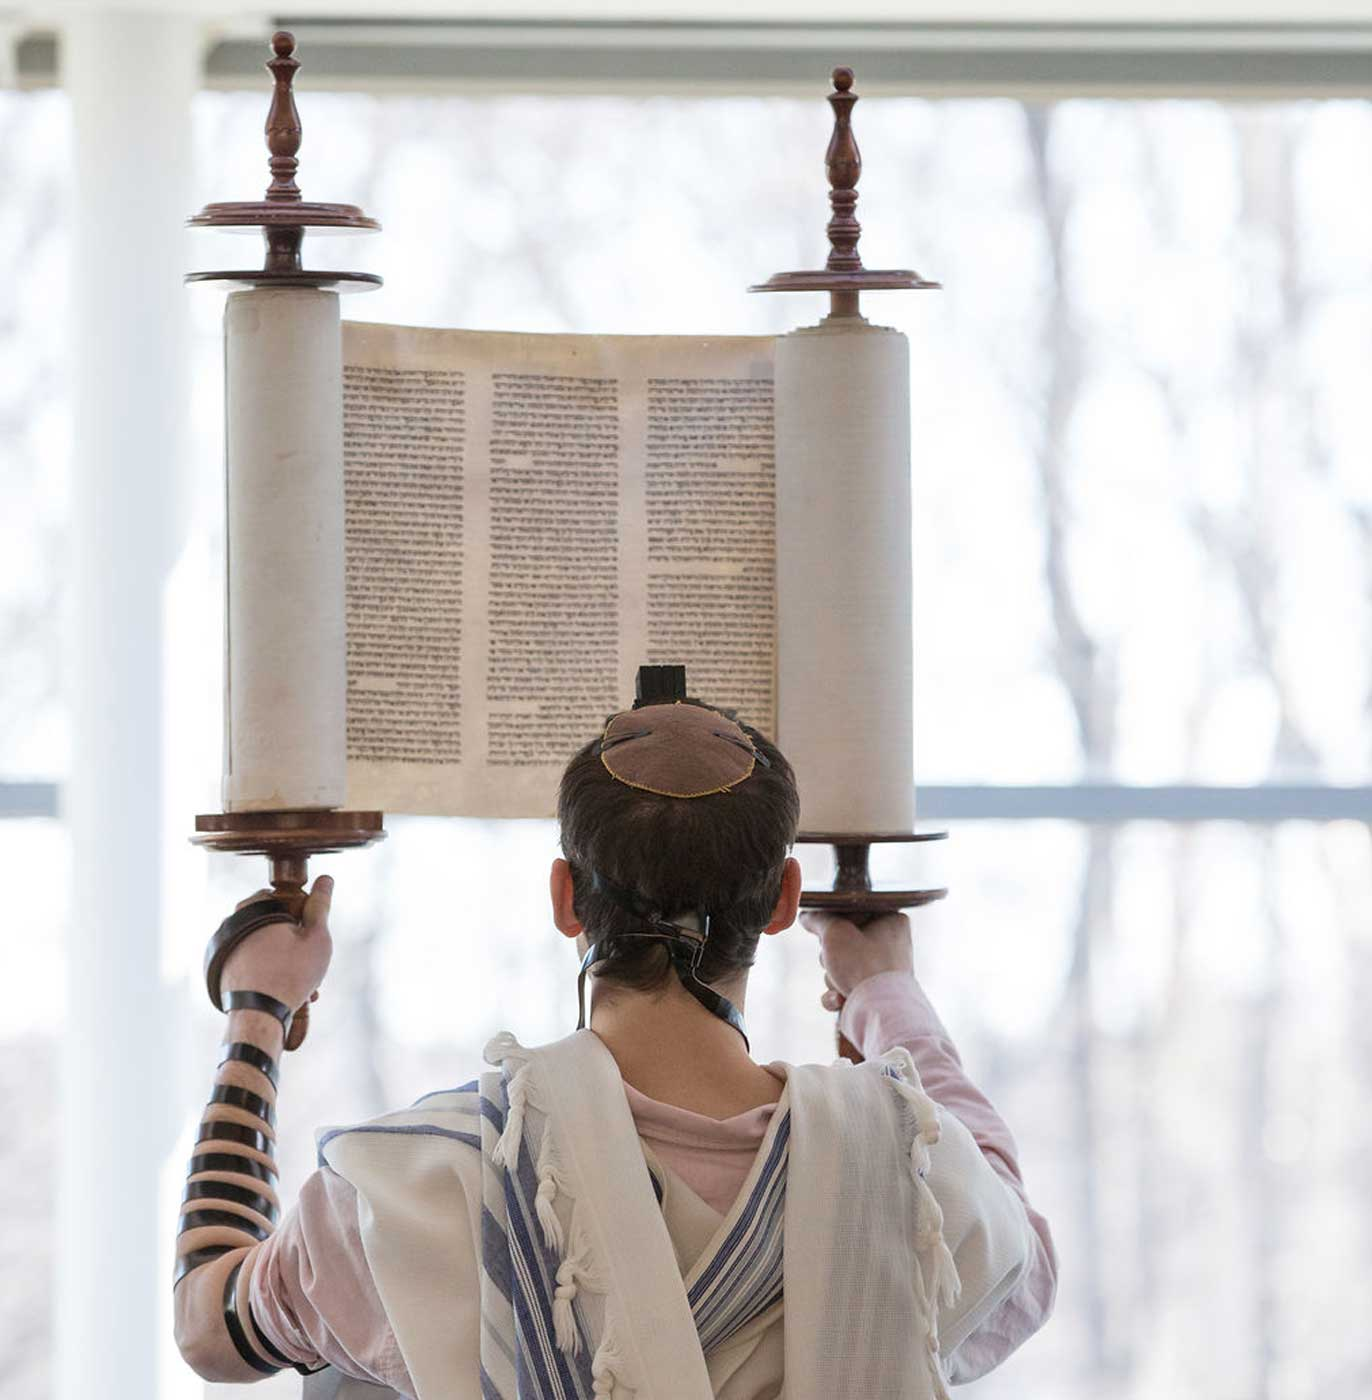 student holding up torah